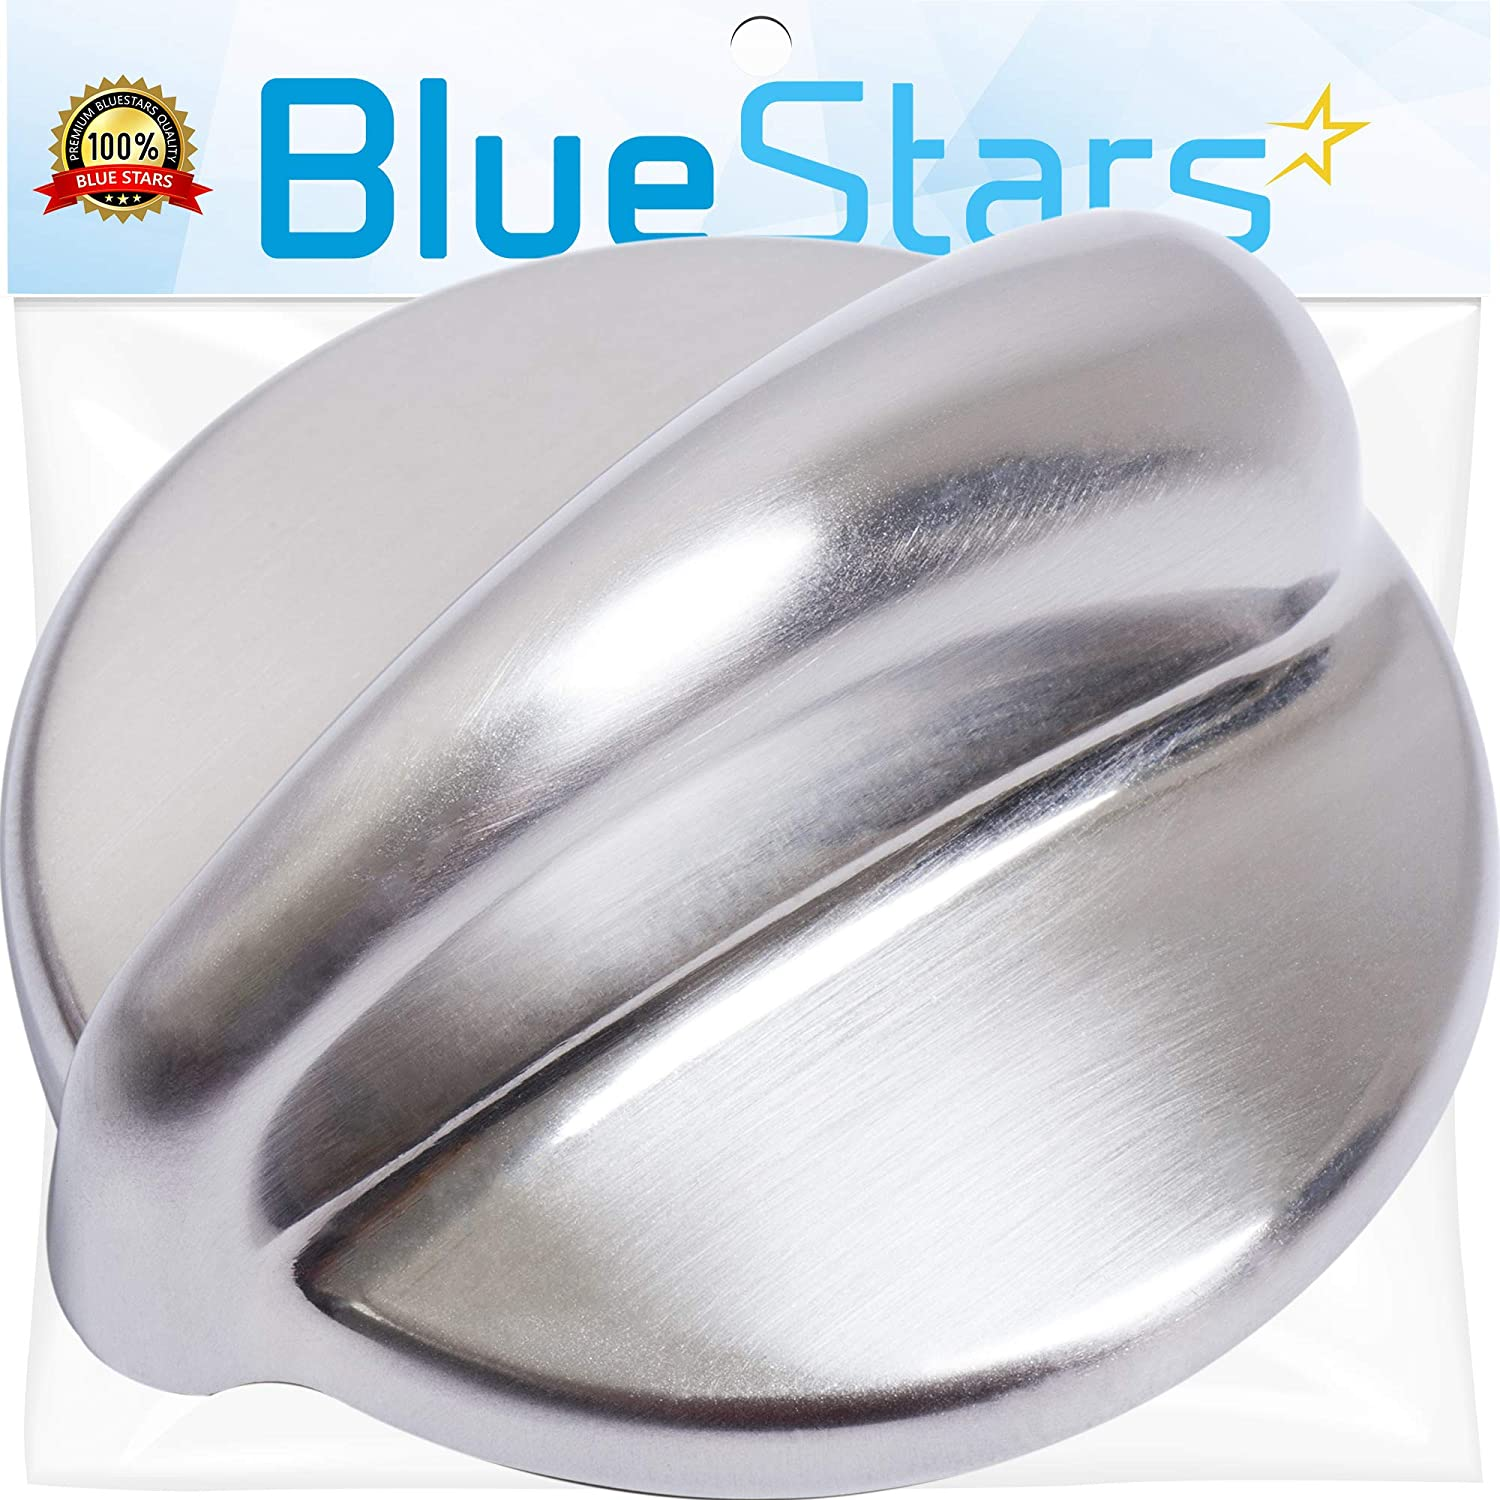 Ultra Durable WB03K10303 Cooktop Control Knob Replacement Part by Blue Stars- Exact Fit for General Electric Range - Replaces 1810427 AP4980246 WB03K10208